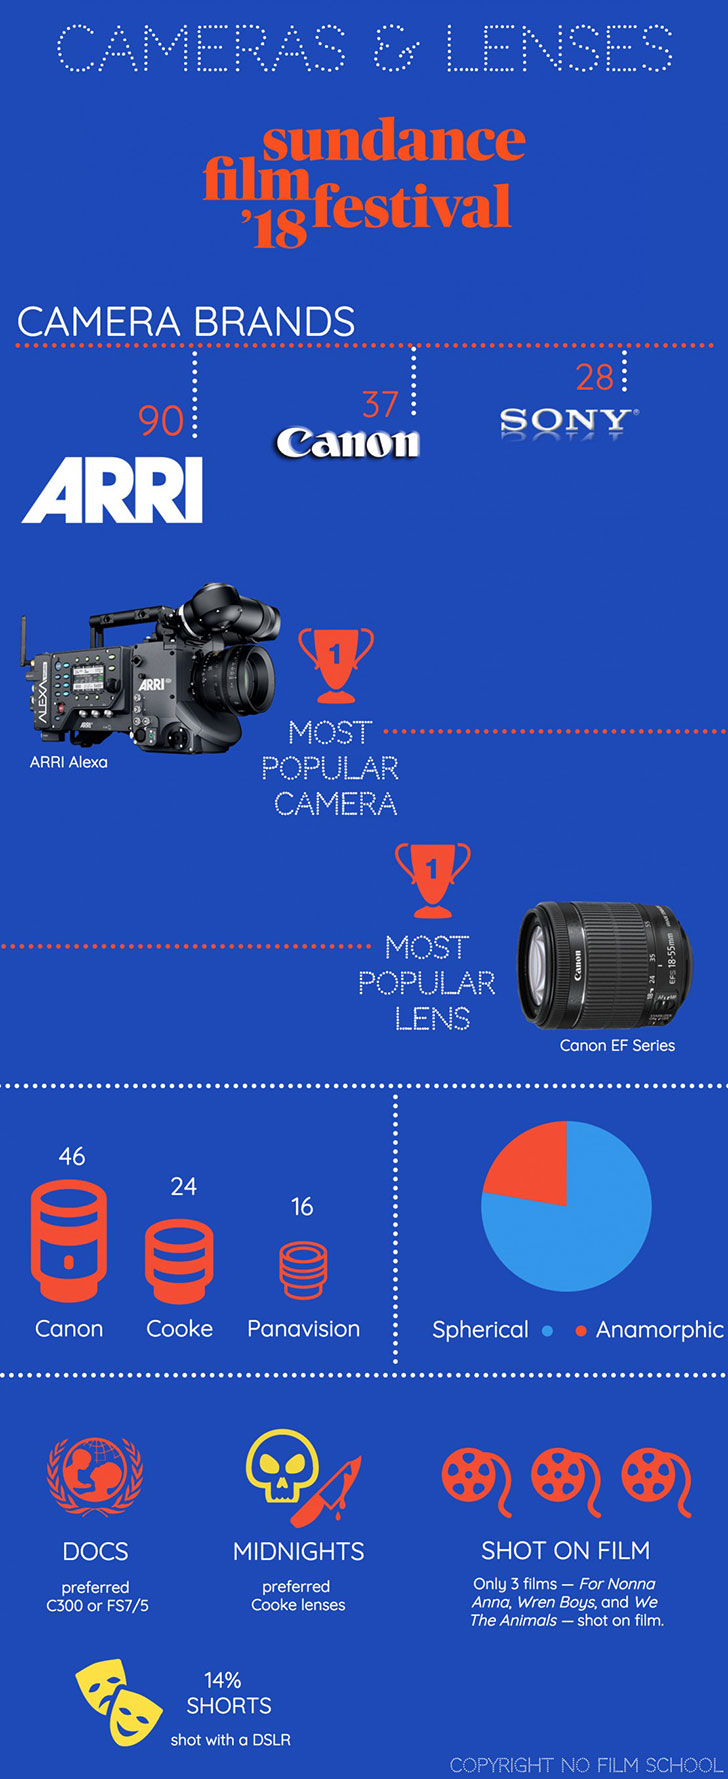 sundance2018gear - Sundance 2018 Infographic: What Was the Most Popular Gear Used for the Films?